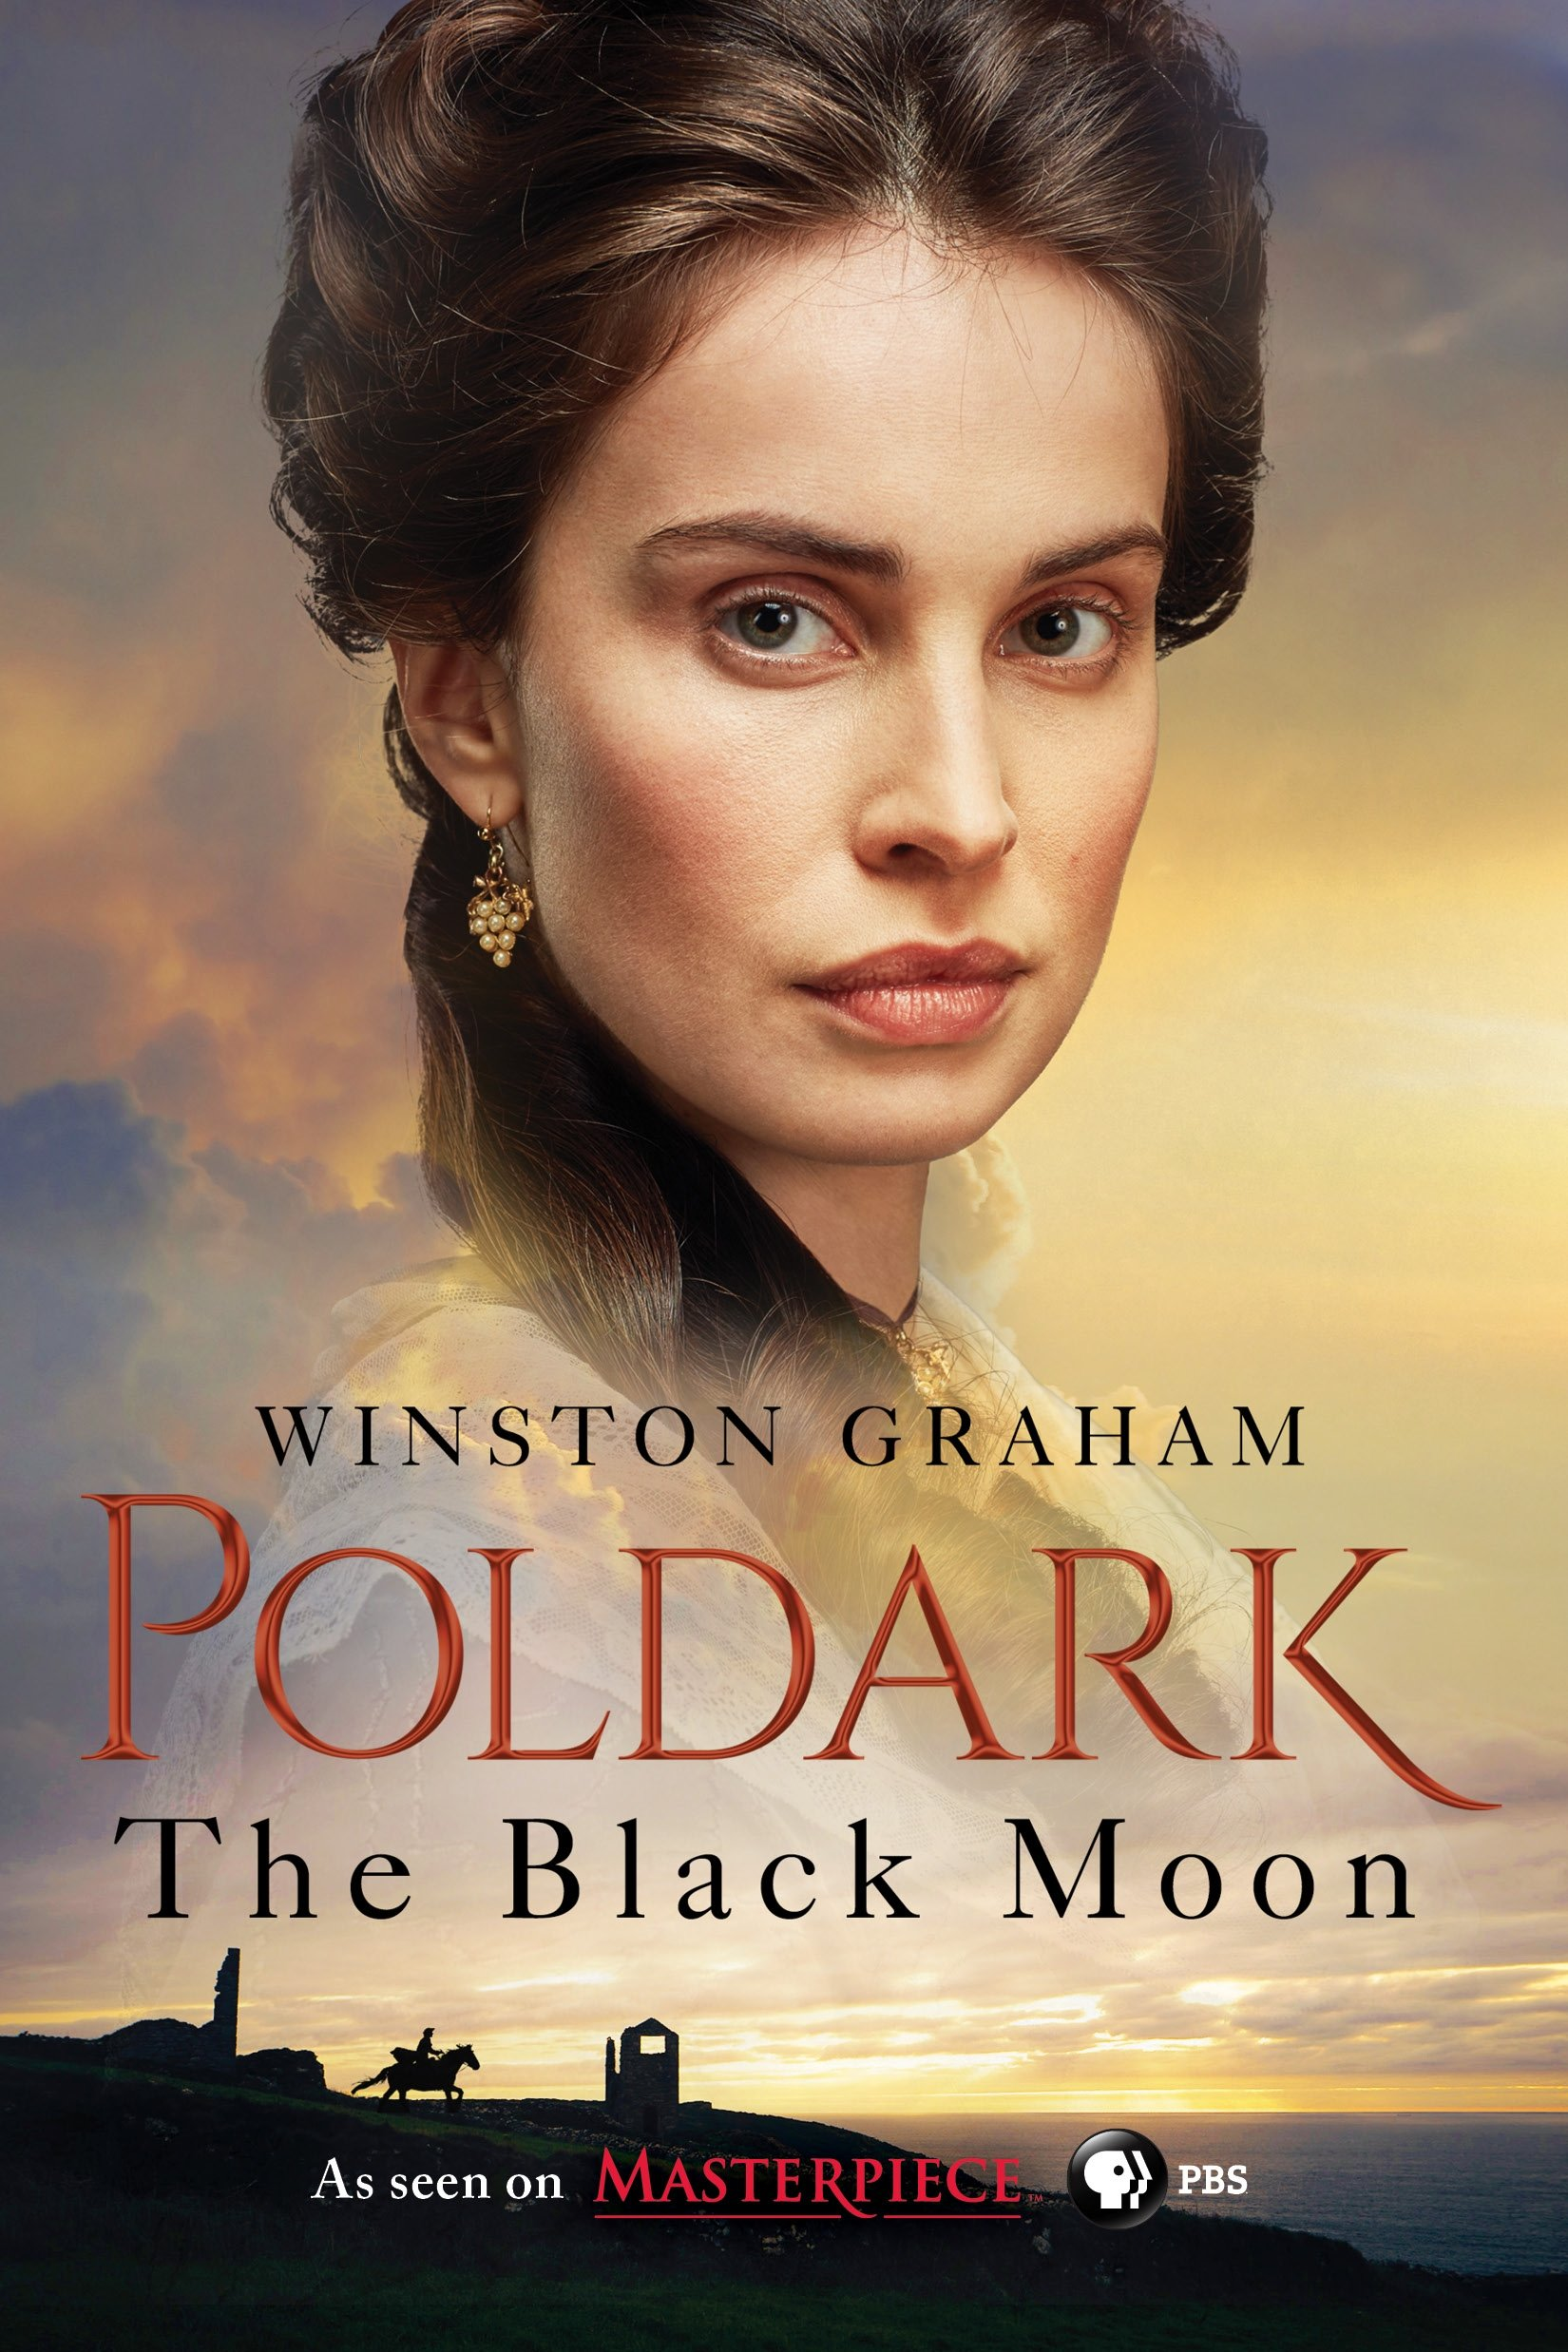 Download image 1700s woman portrait pc android iphone and ipad - The Black Moon A Novel Of Cornwall 1794 1795 Poldark Winston Graham 9781250124913 Amazon Com Books